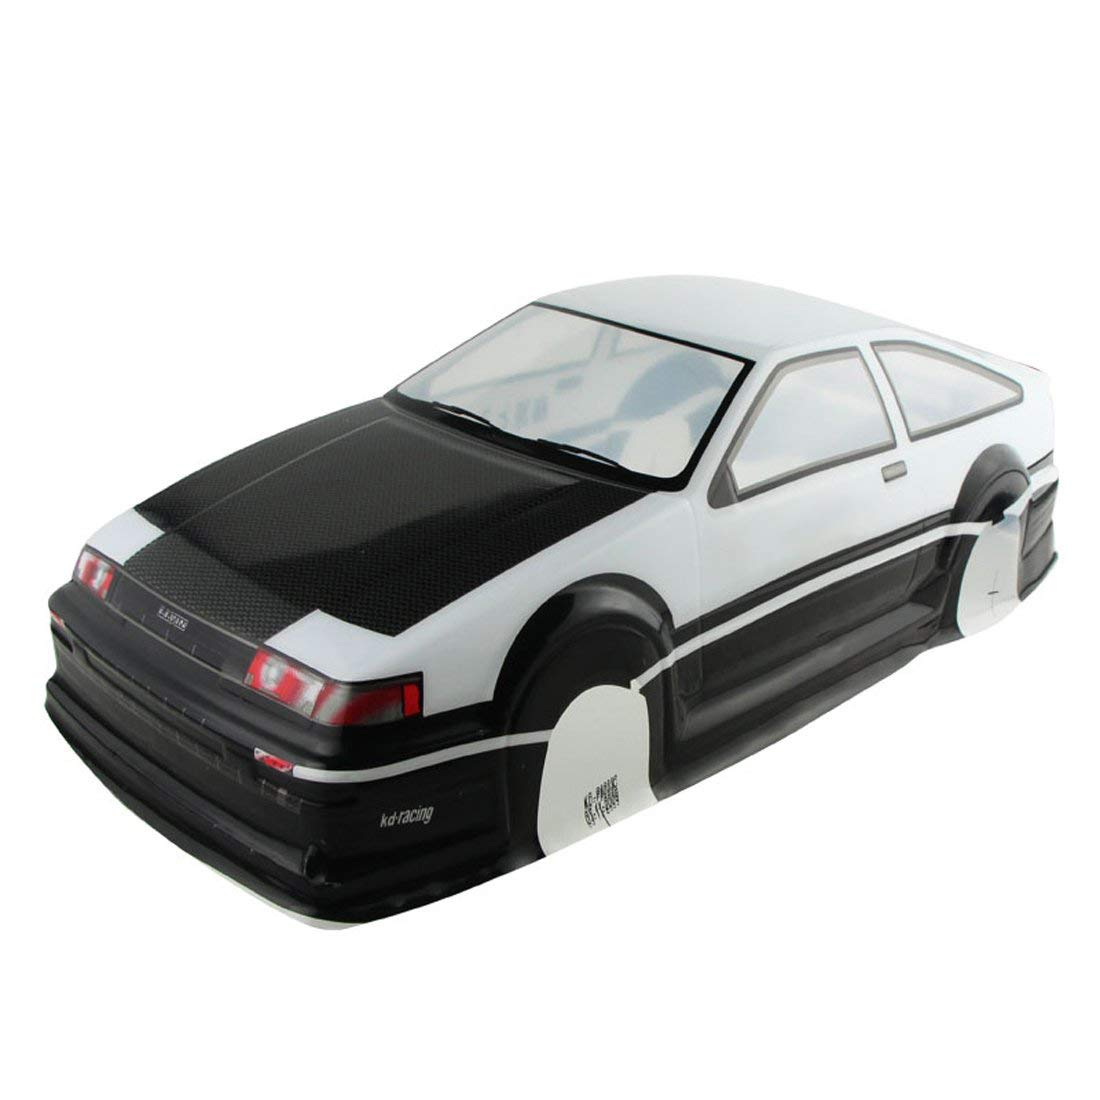 B07589WKV2 Coolplay 1/10 PVC Painted Body Shell RC Racing Car Accessories for Toyota Corolla AE86 51rSRXVCzXL